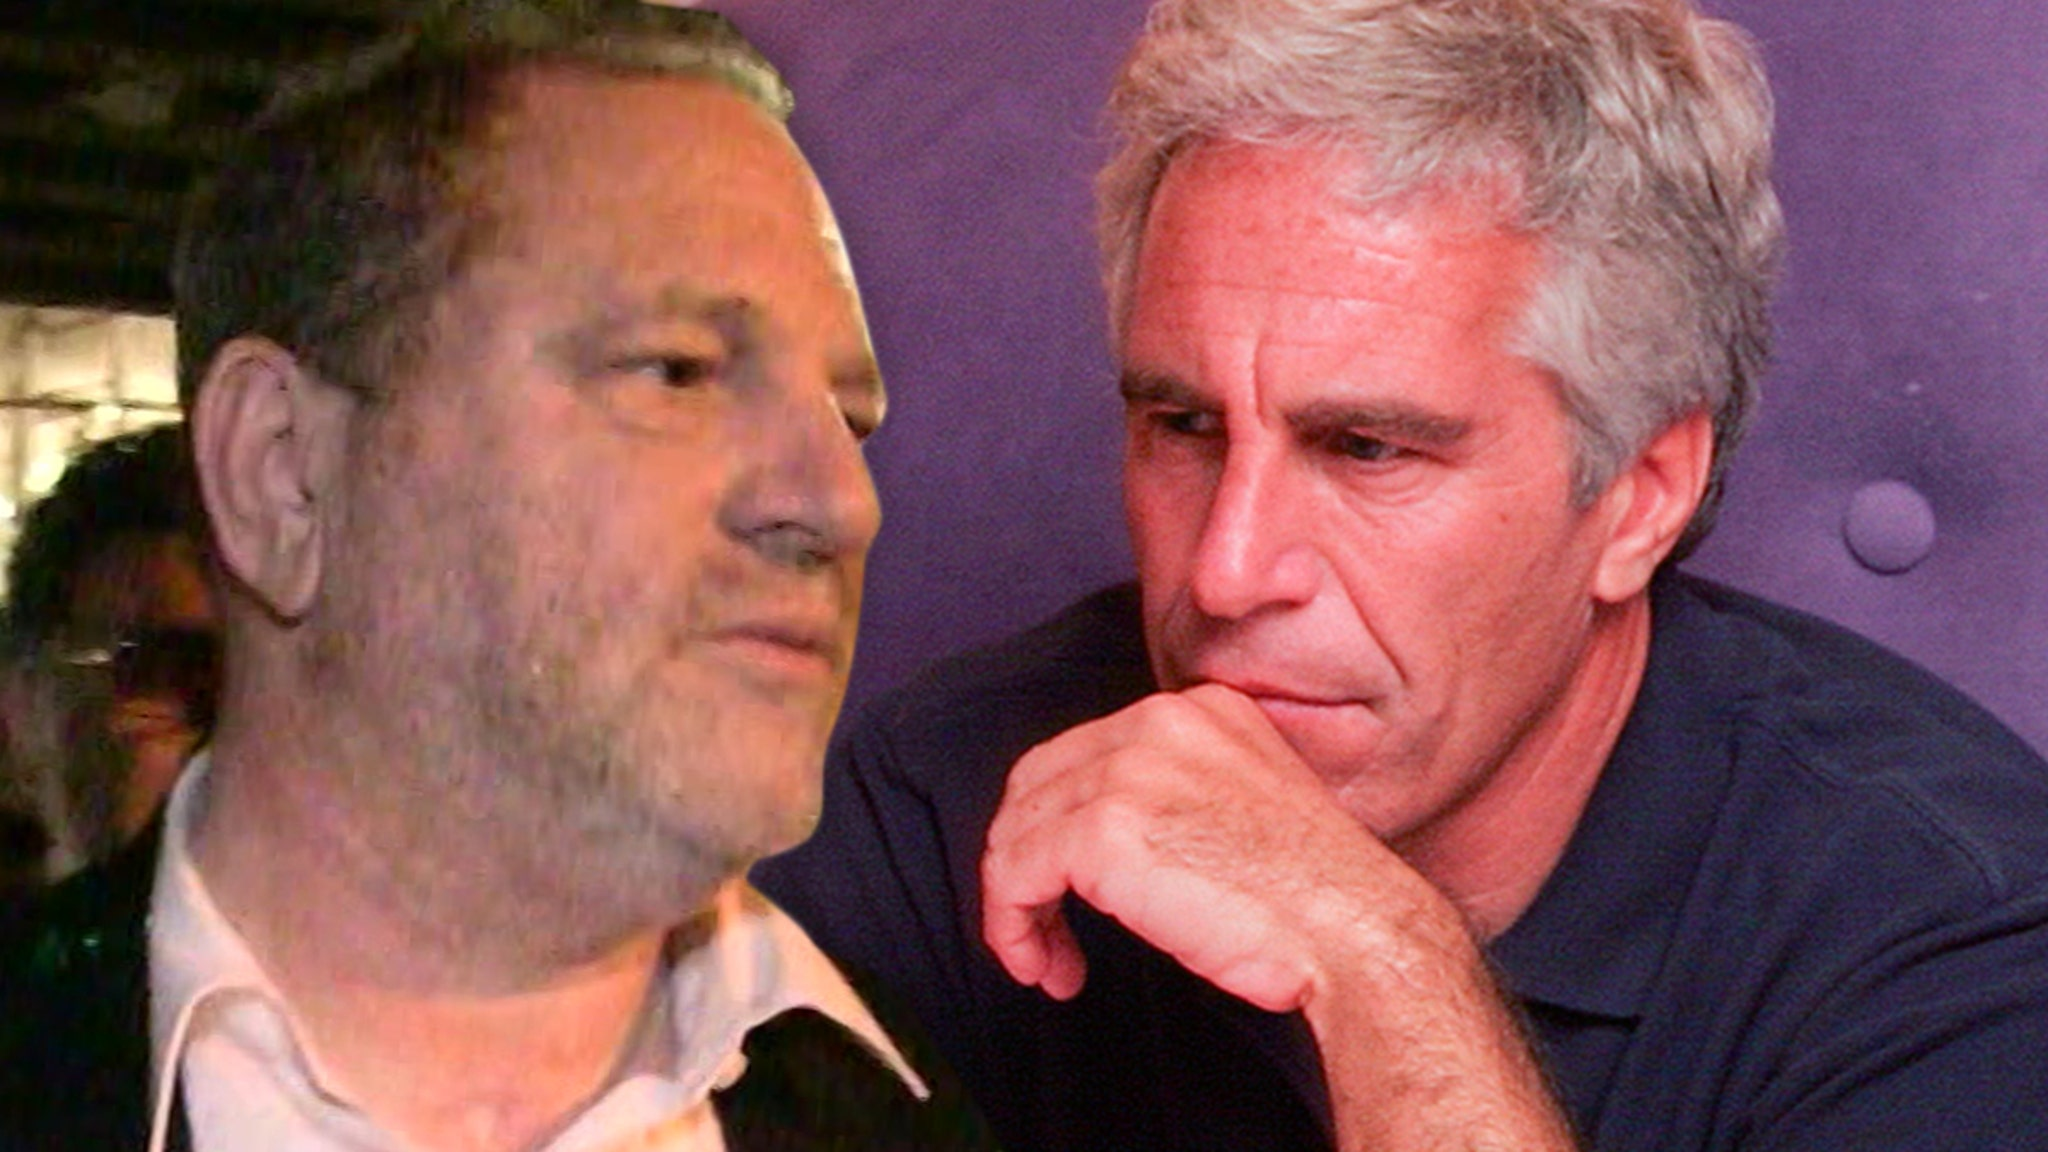 Harvey Weinstein Worries NYC Prison Officials, Fear Another Epstein